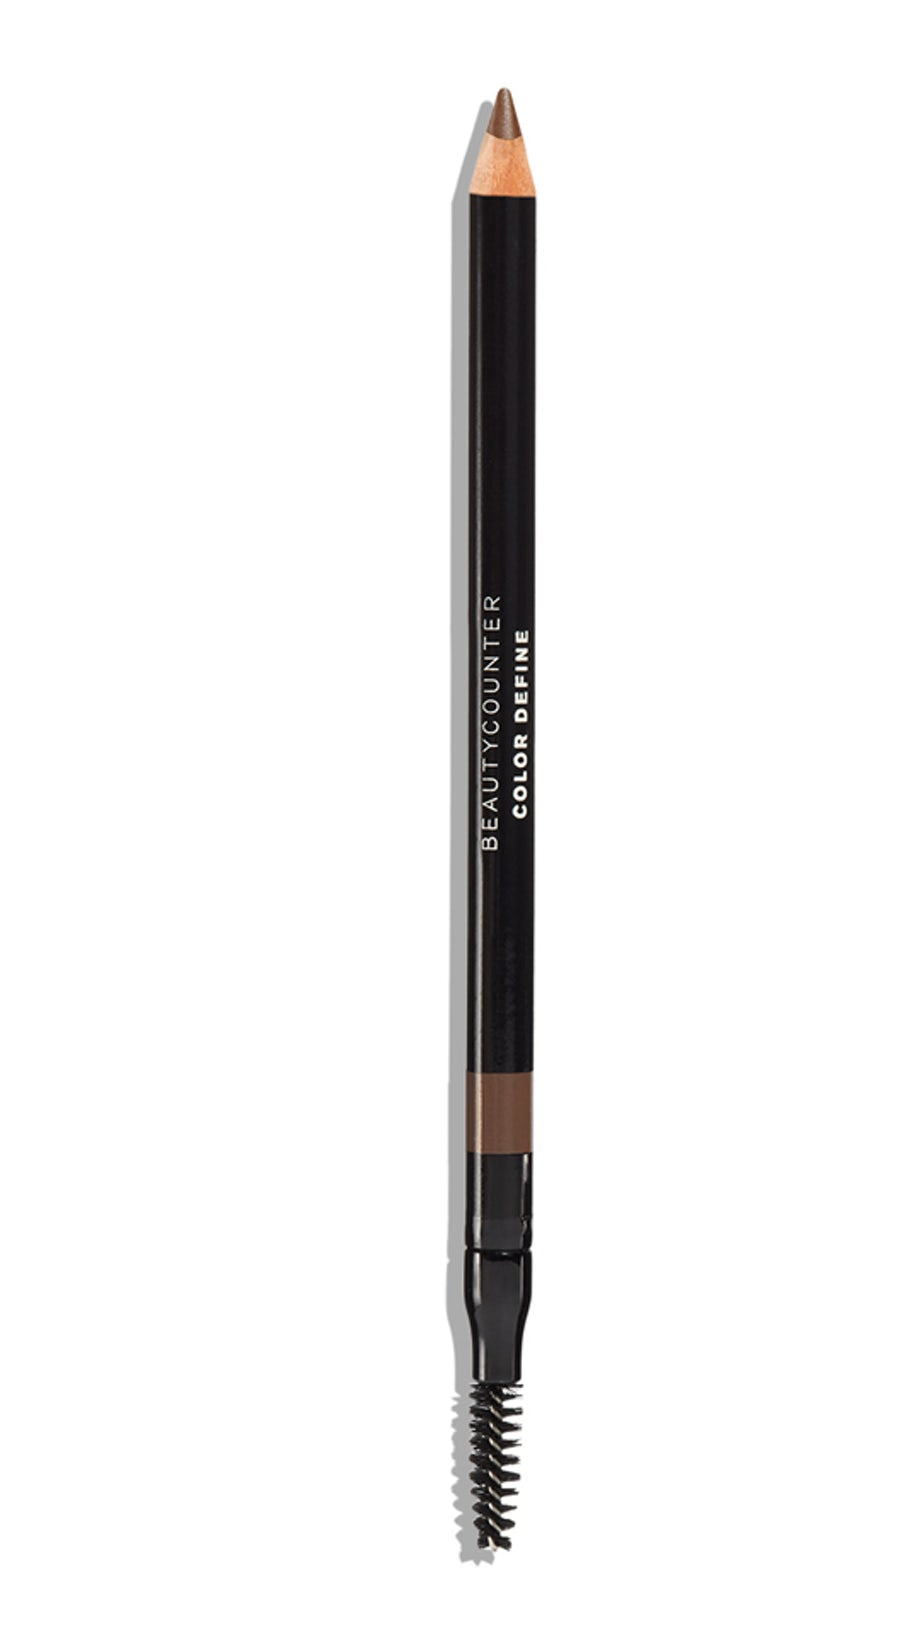 product-images%2F2506%2Fimgs%2Fpdp-colordefinebrowpencil-medium_selling-shot_528x962_2.jpg